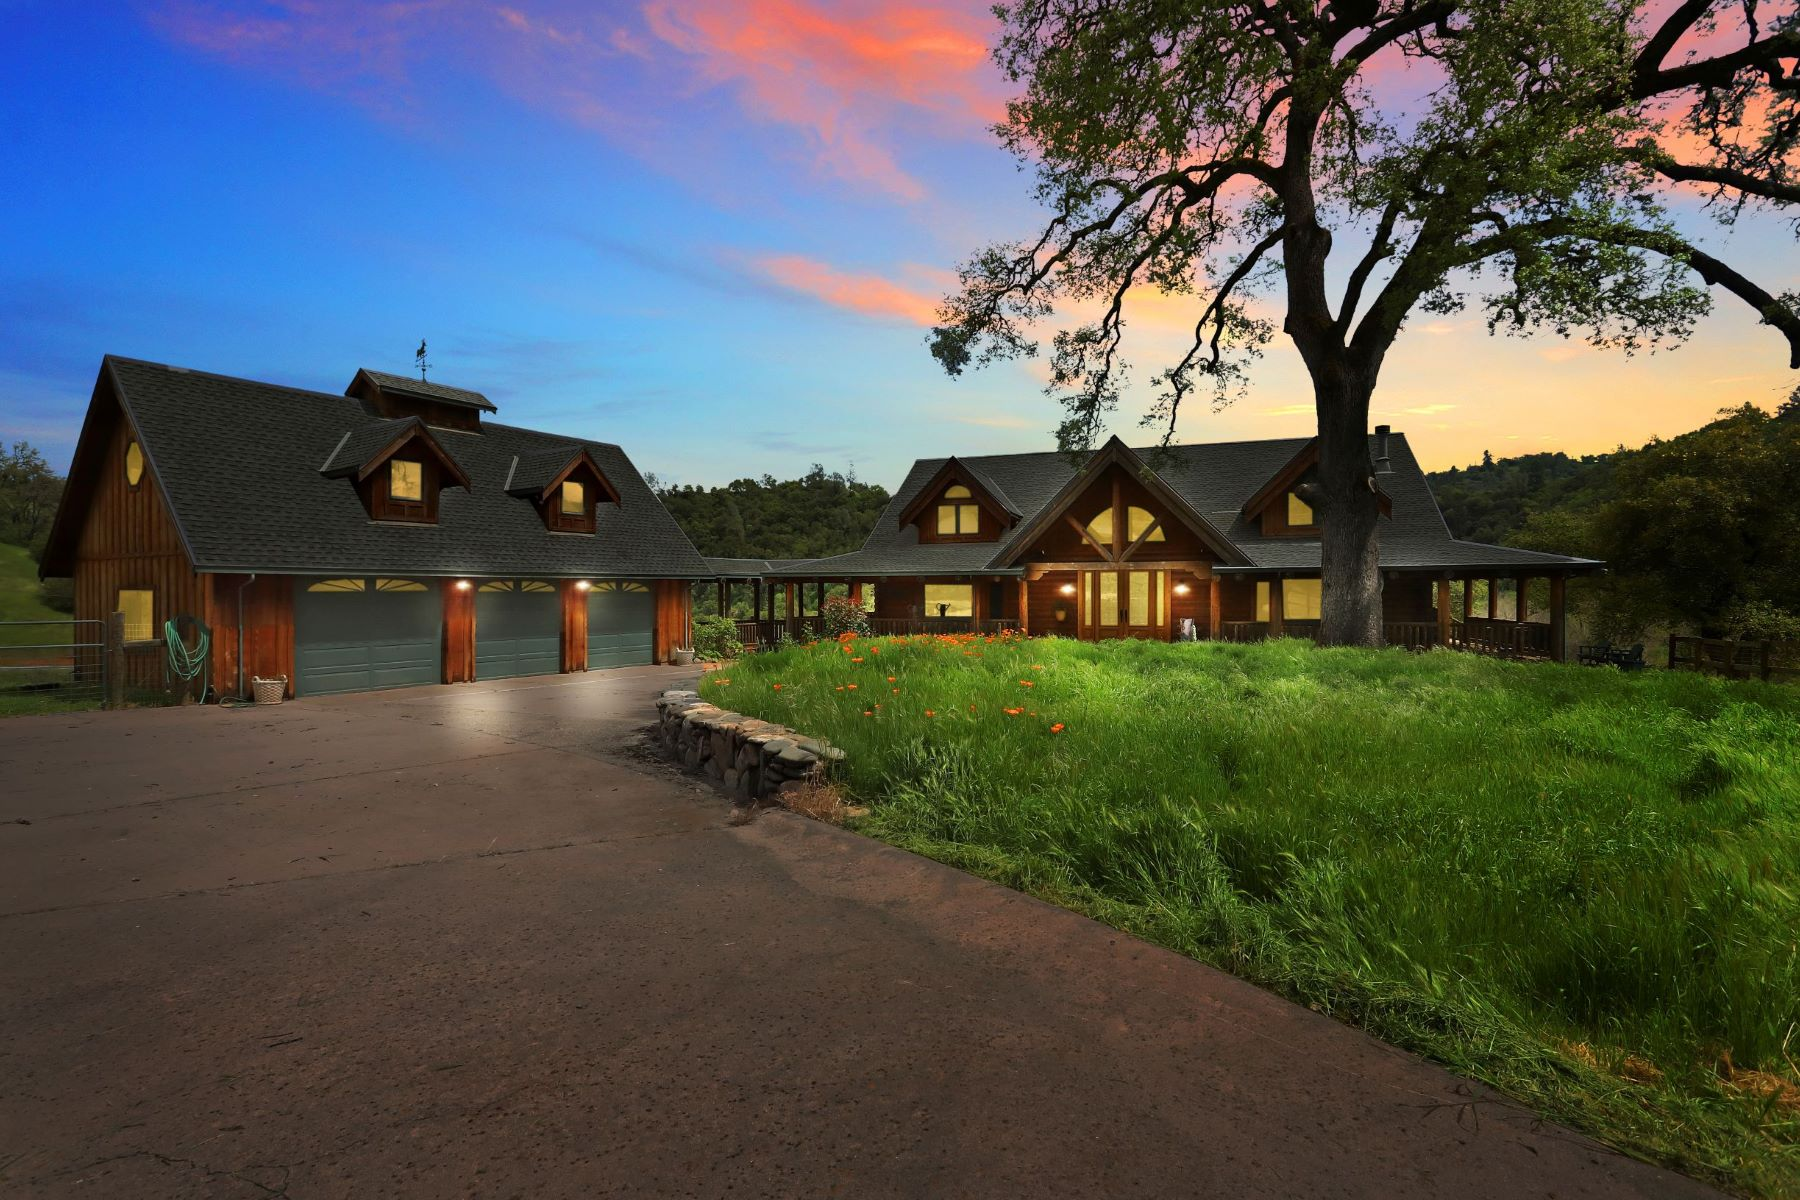 Single Family Homes for Sale at Custom Log Home on the Calaveras River 4200 River Ranch Road San Andreas, California 95249 United States